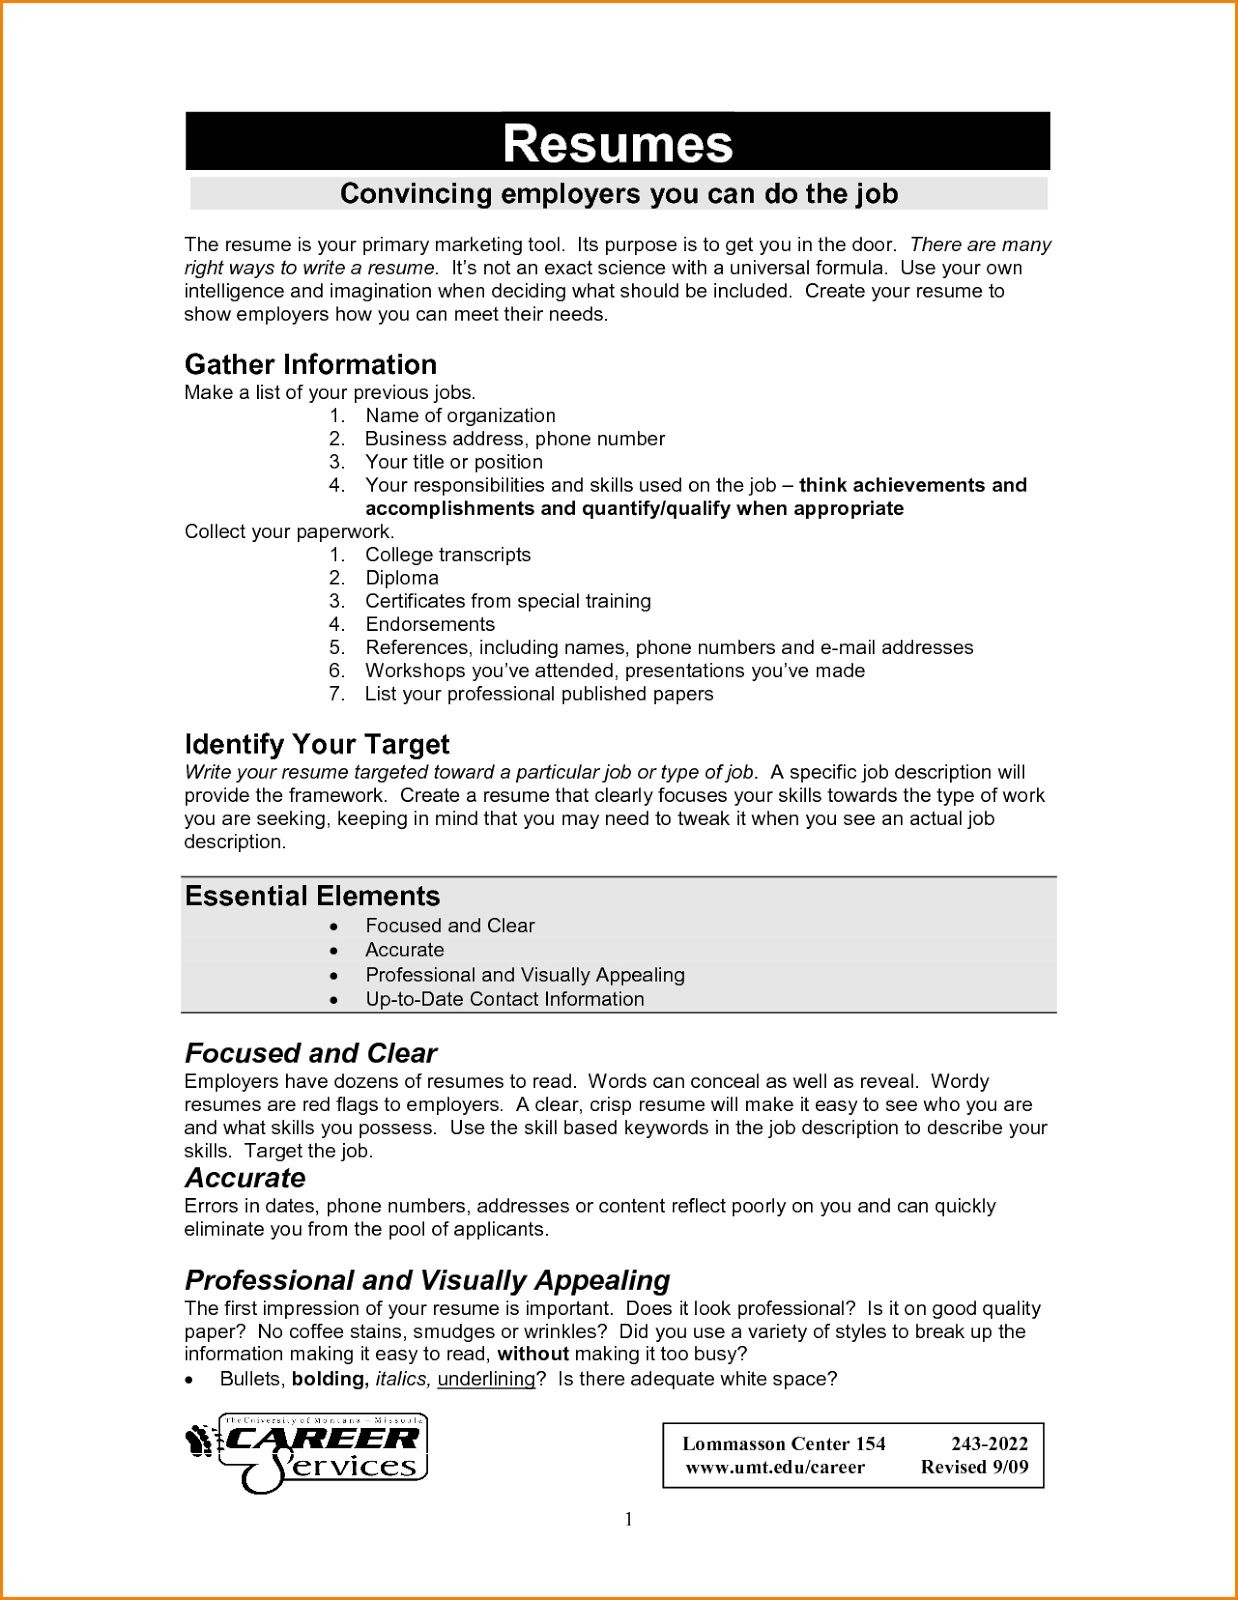 Simplifying Your Work With the Help of Resume Templates